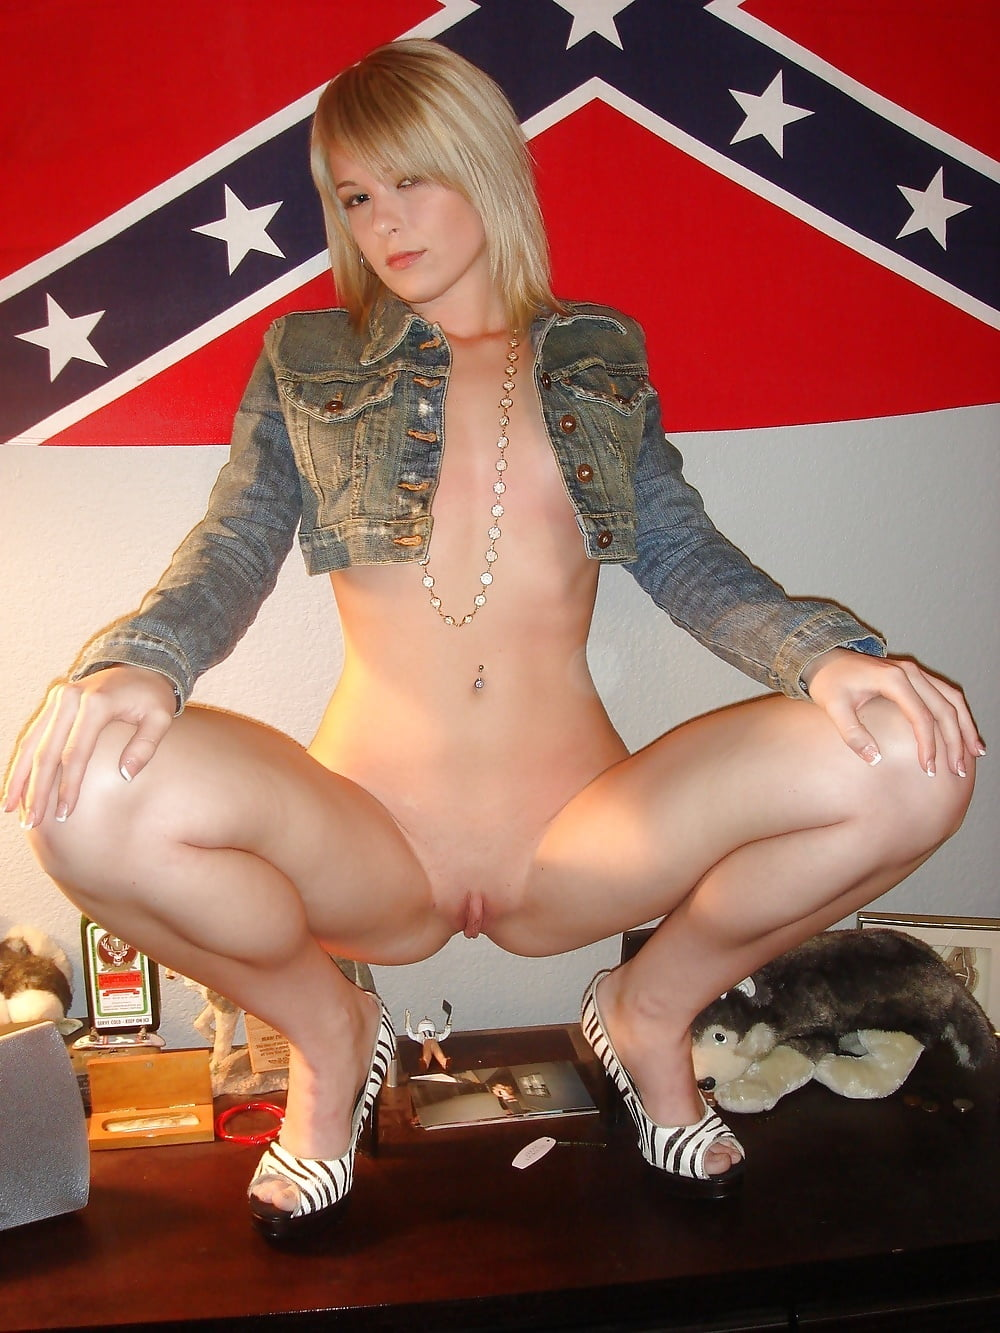 Sexy young redneck girl